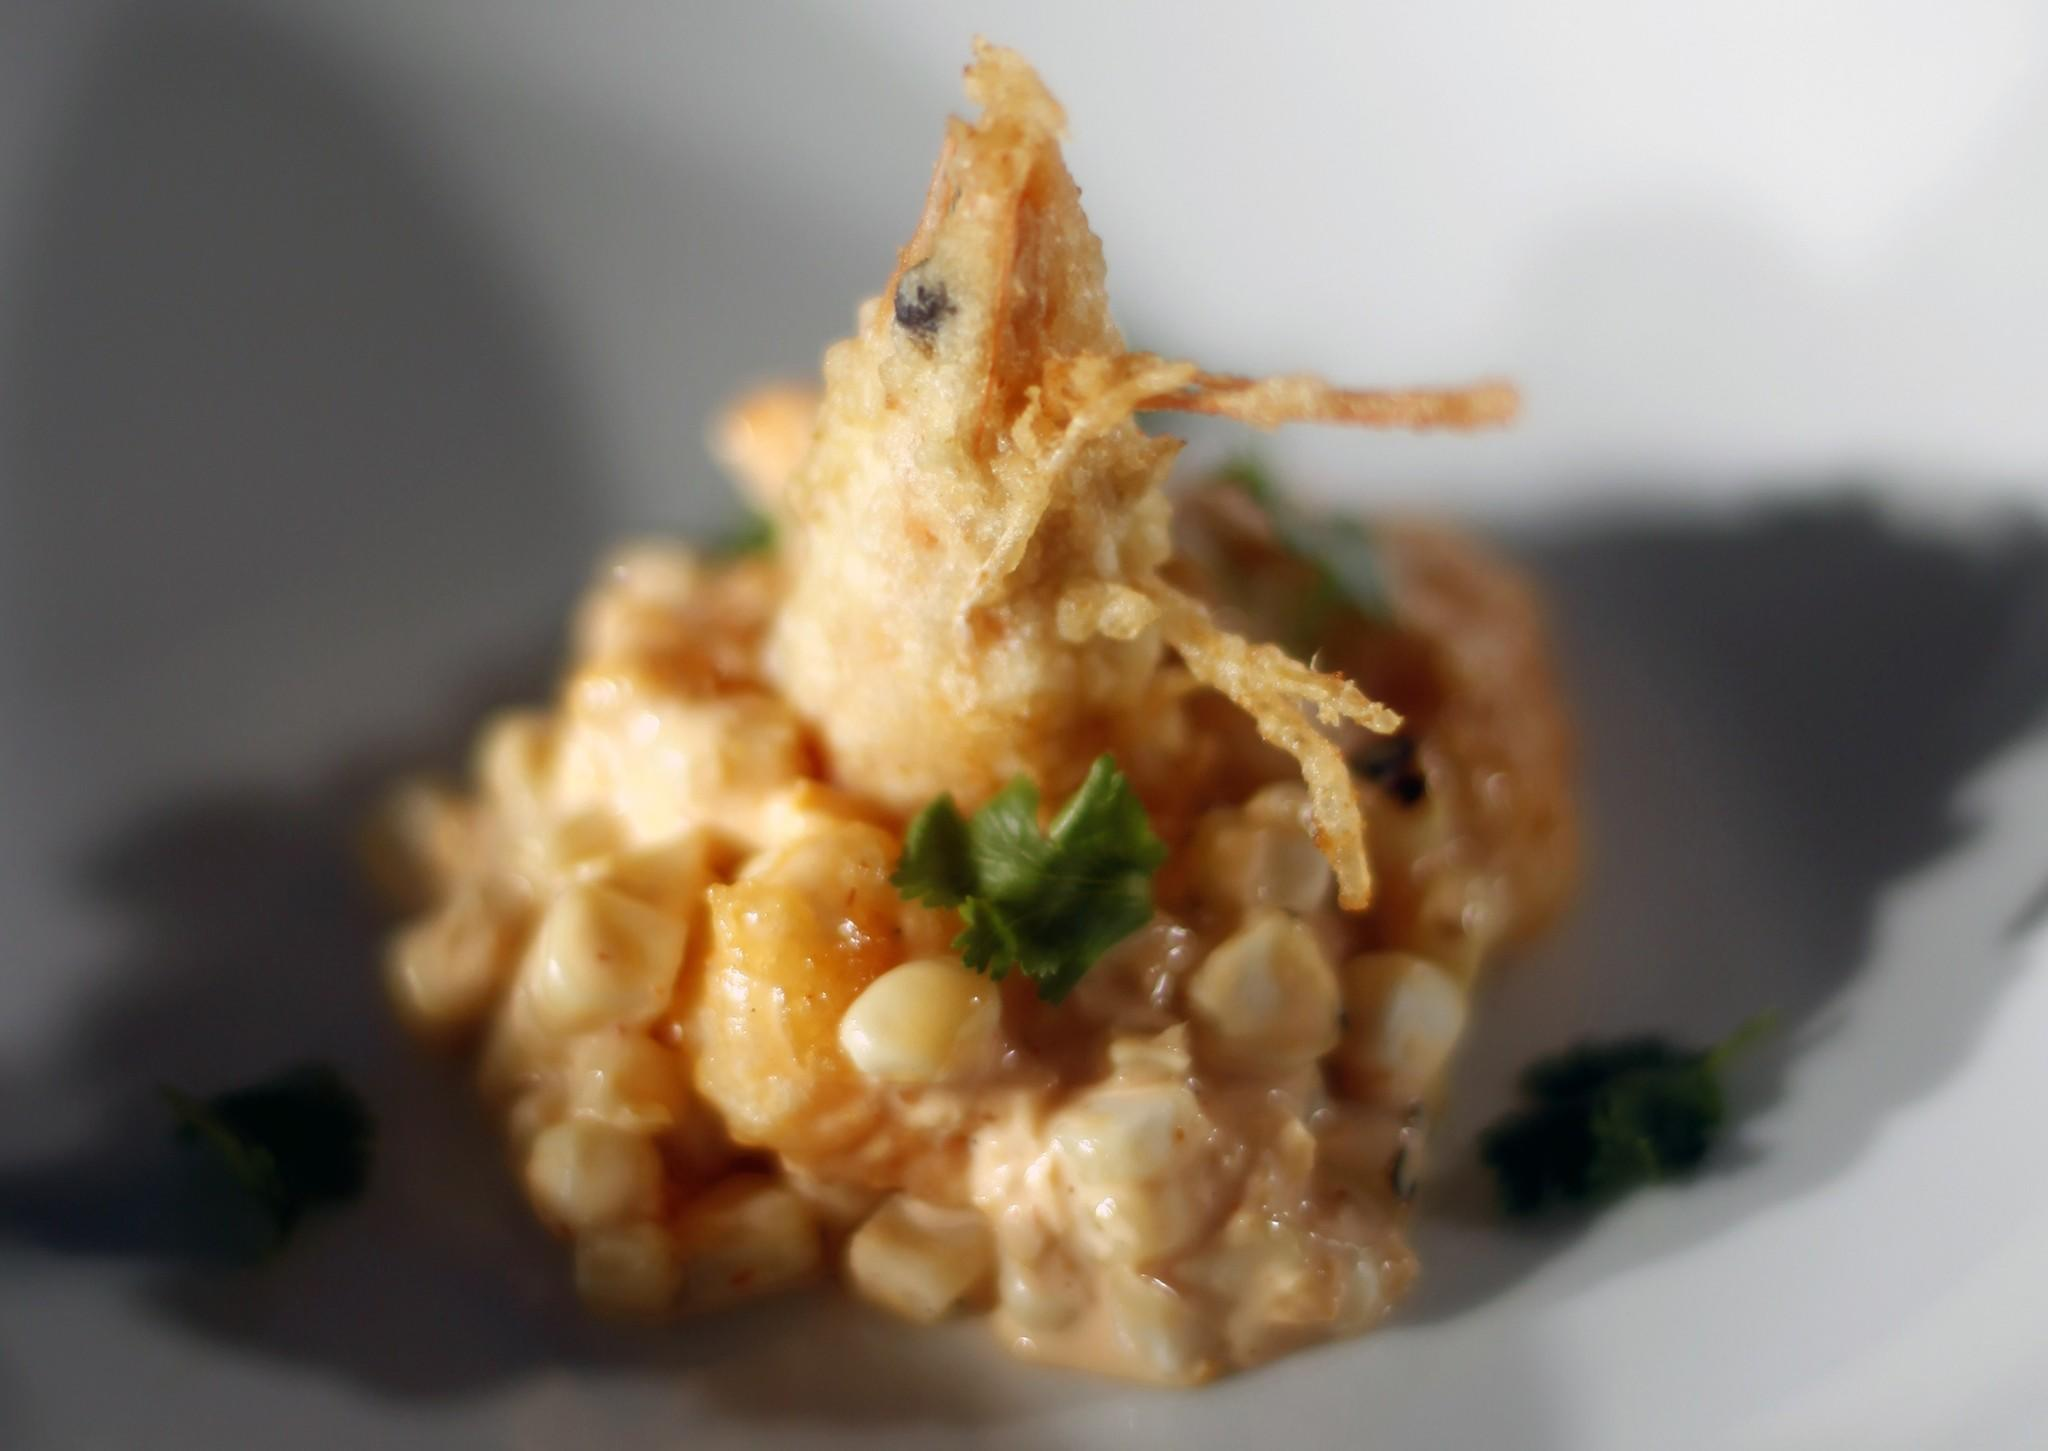 Shrimp tempura with Peruvian aji amarillo aioli and maize